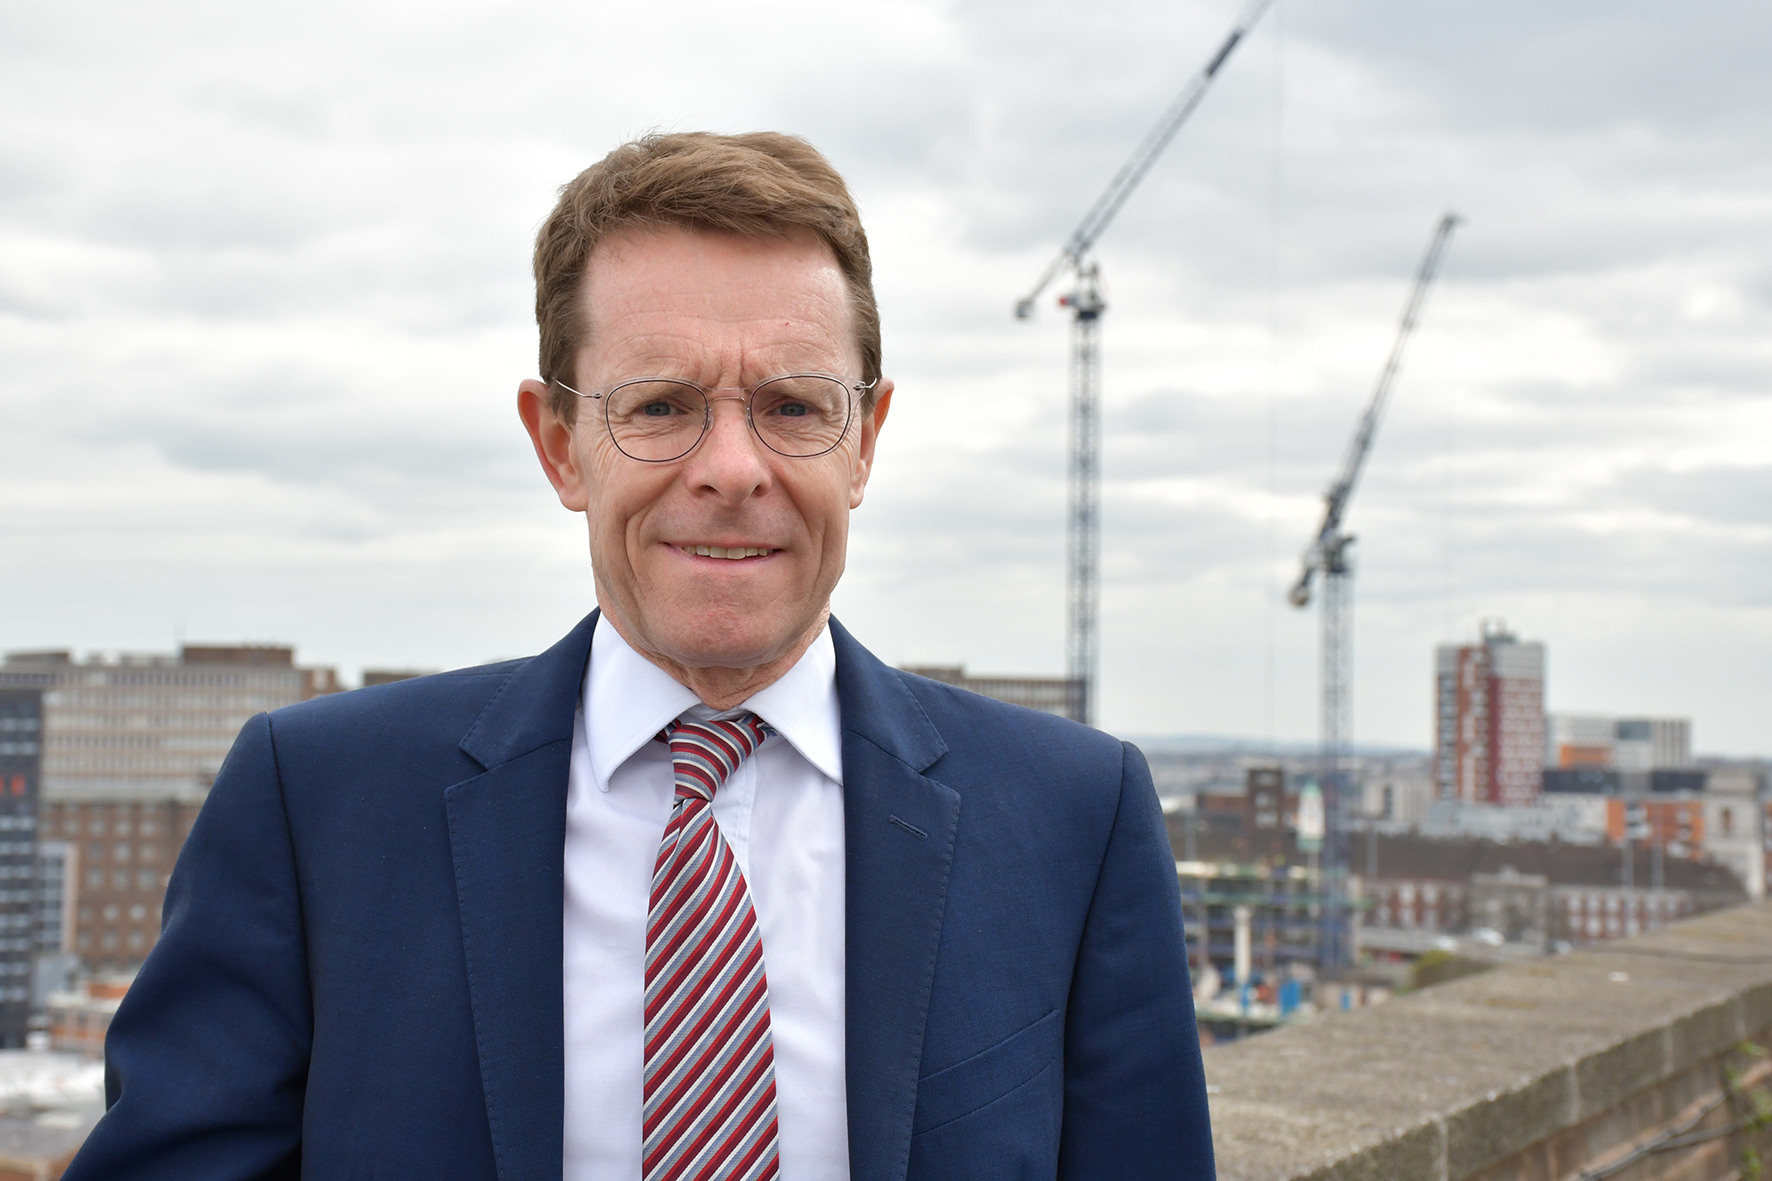 Mayor supports plan to get region's house building and construction sites safely back to work